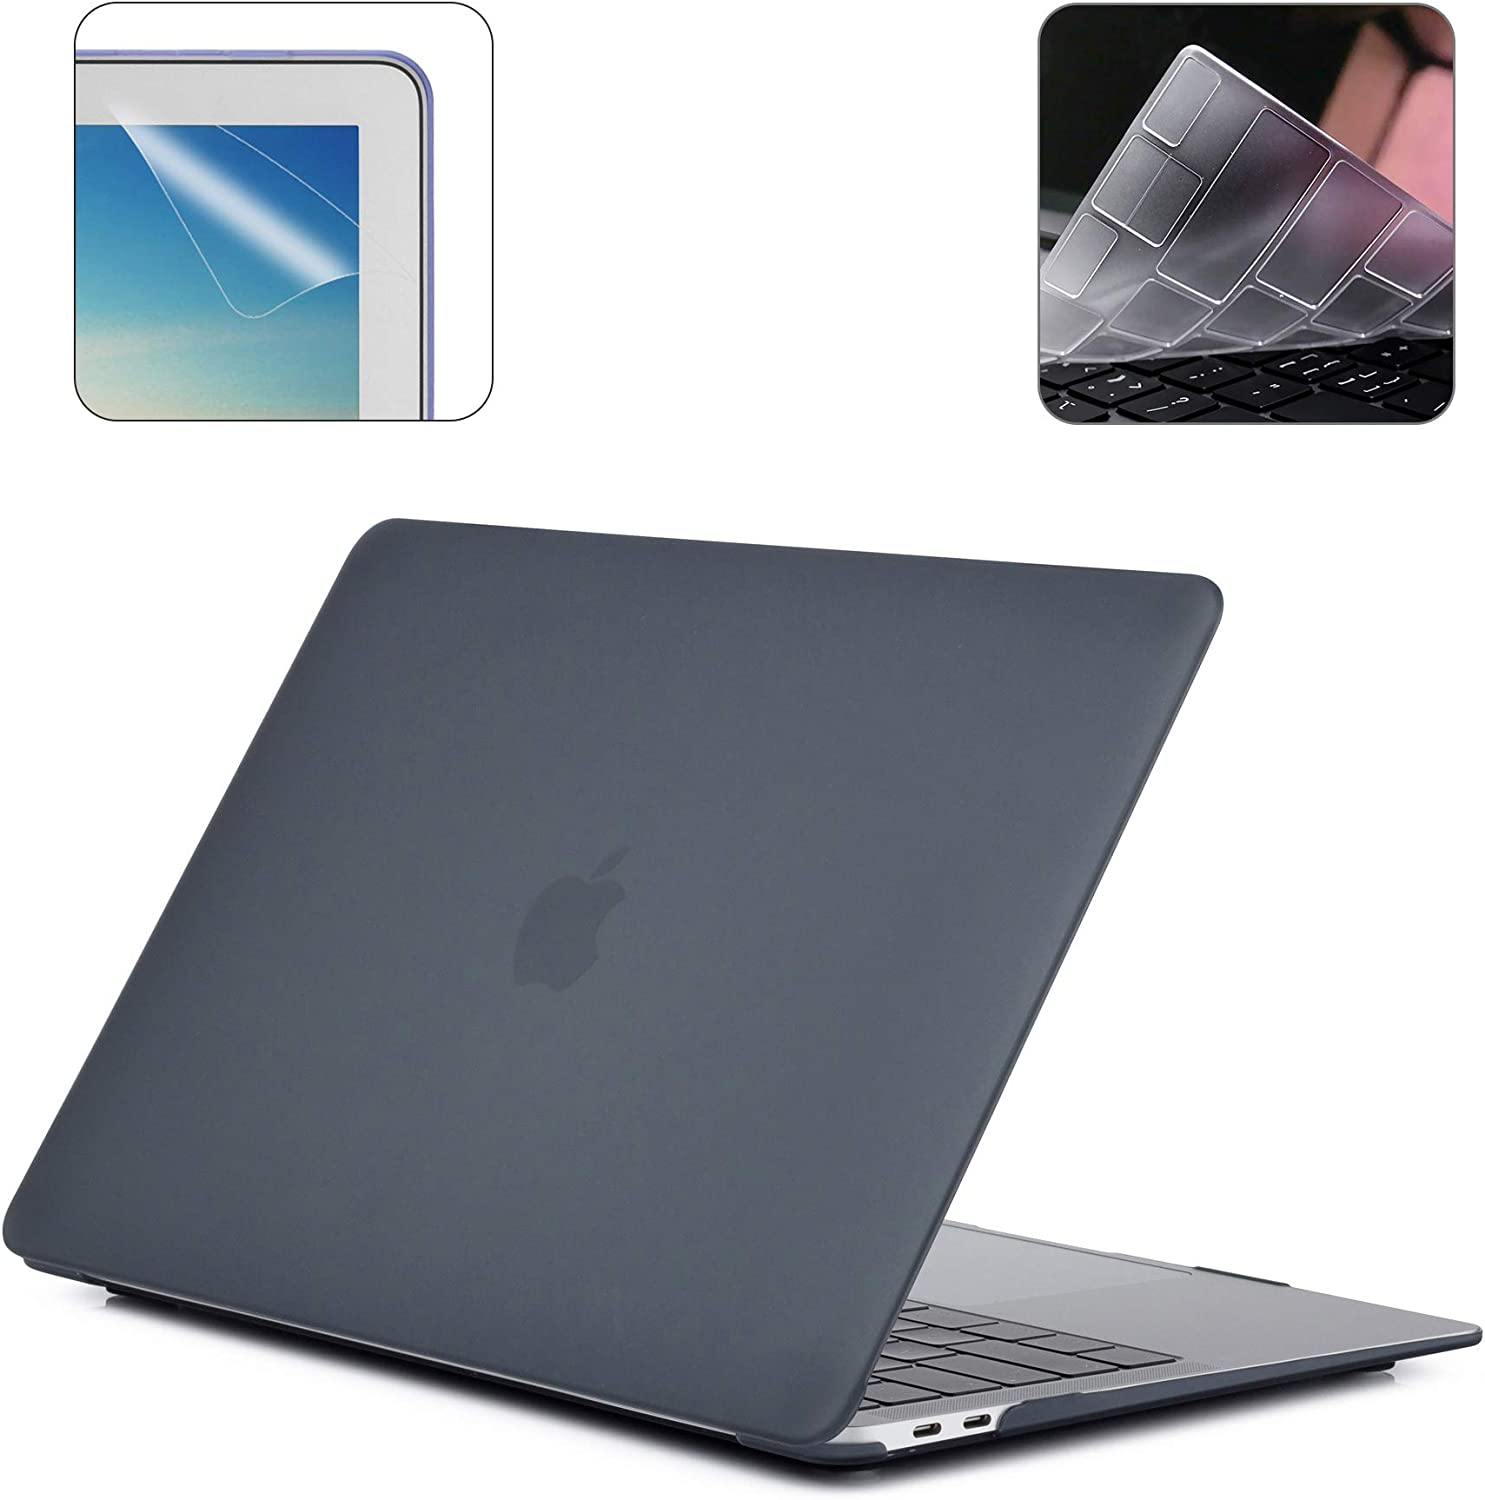 2019 Release New 16 Inch MacBook Pro A2141 Hard Case Pack with Plastic Hard Shell, Keyboard Cover & Screen Protector 16TWQ - Black